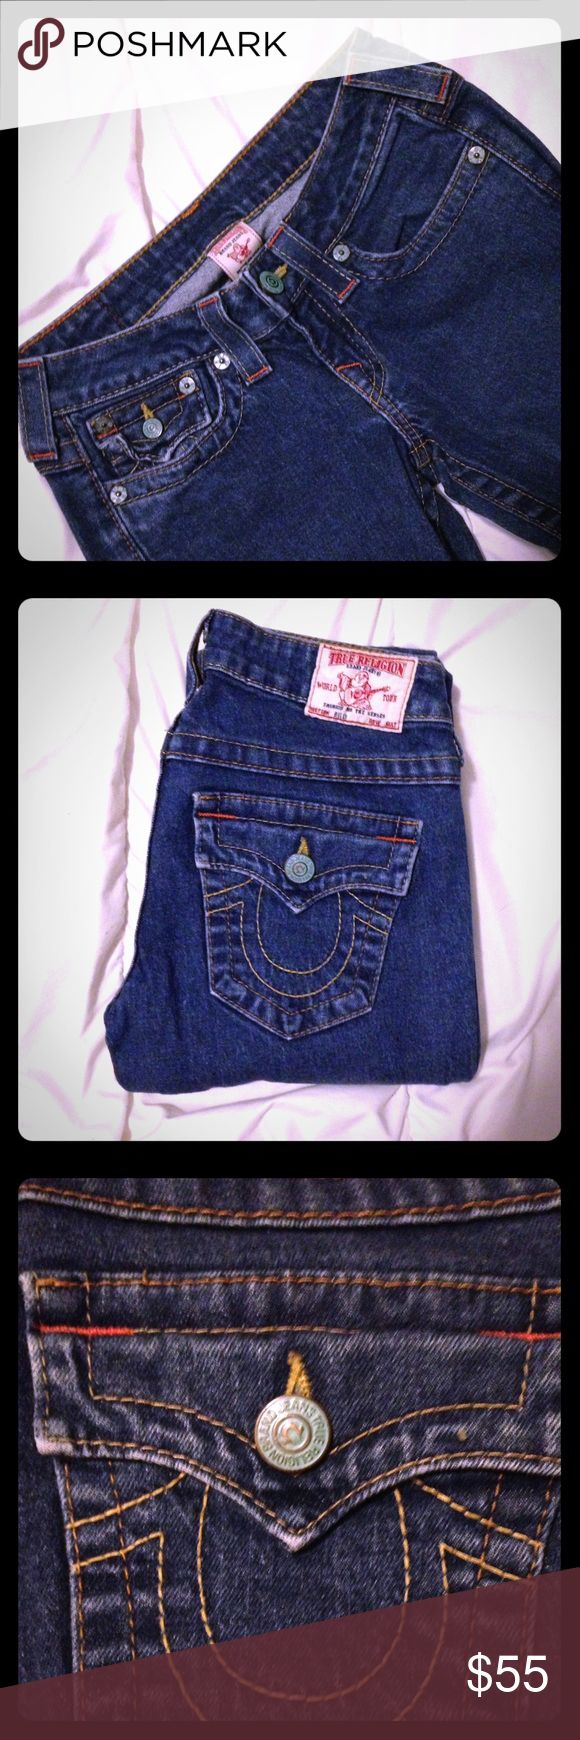 True Religion 'Billy' Jeans SZ 26 EUC True a Religion 'Billy' Jeans in a SZ 26. Skinny/Straight Style. No longer made with the green, oxidized buttons. No flaws or defects. *Its worth noting that TR has filed for bankruptcy, so get them while you can. Make an offer.:) True Religion Jeans